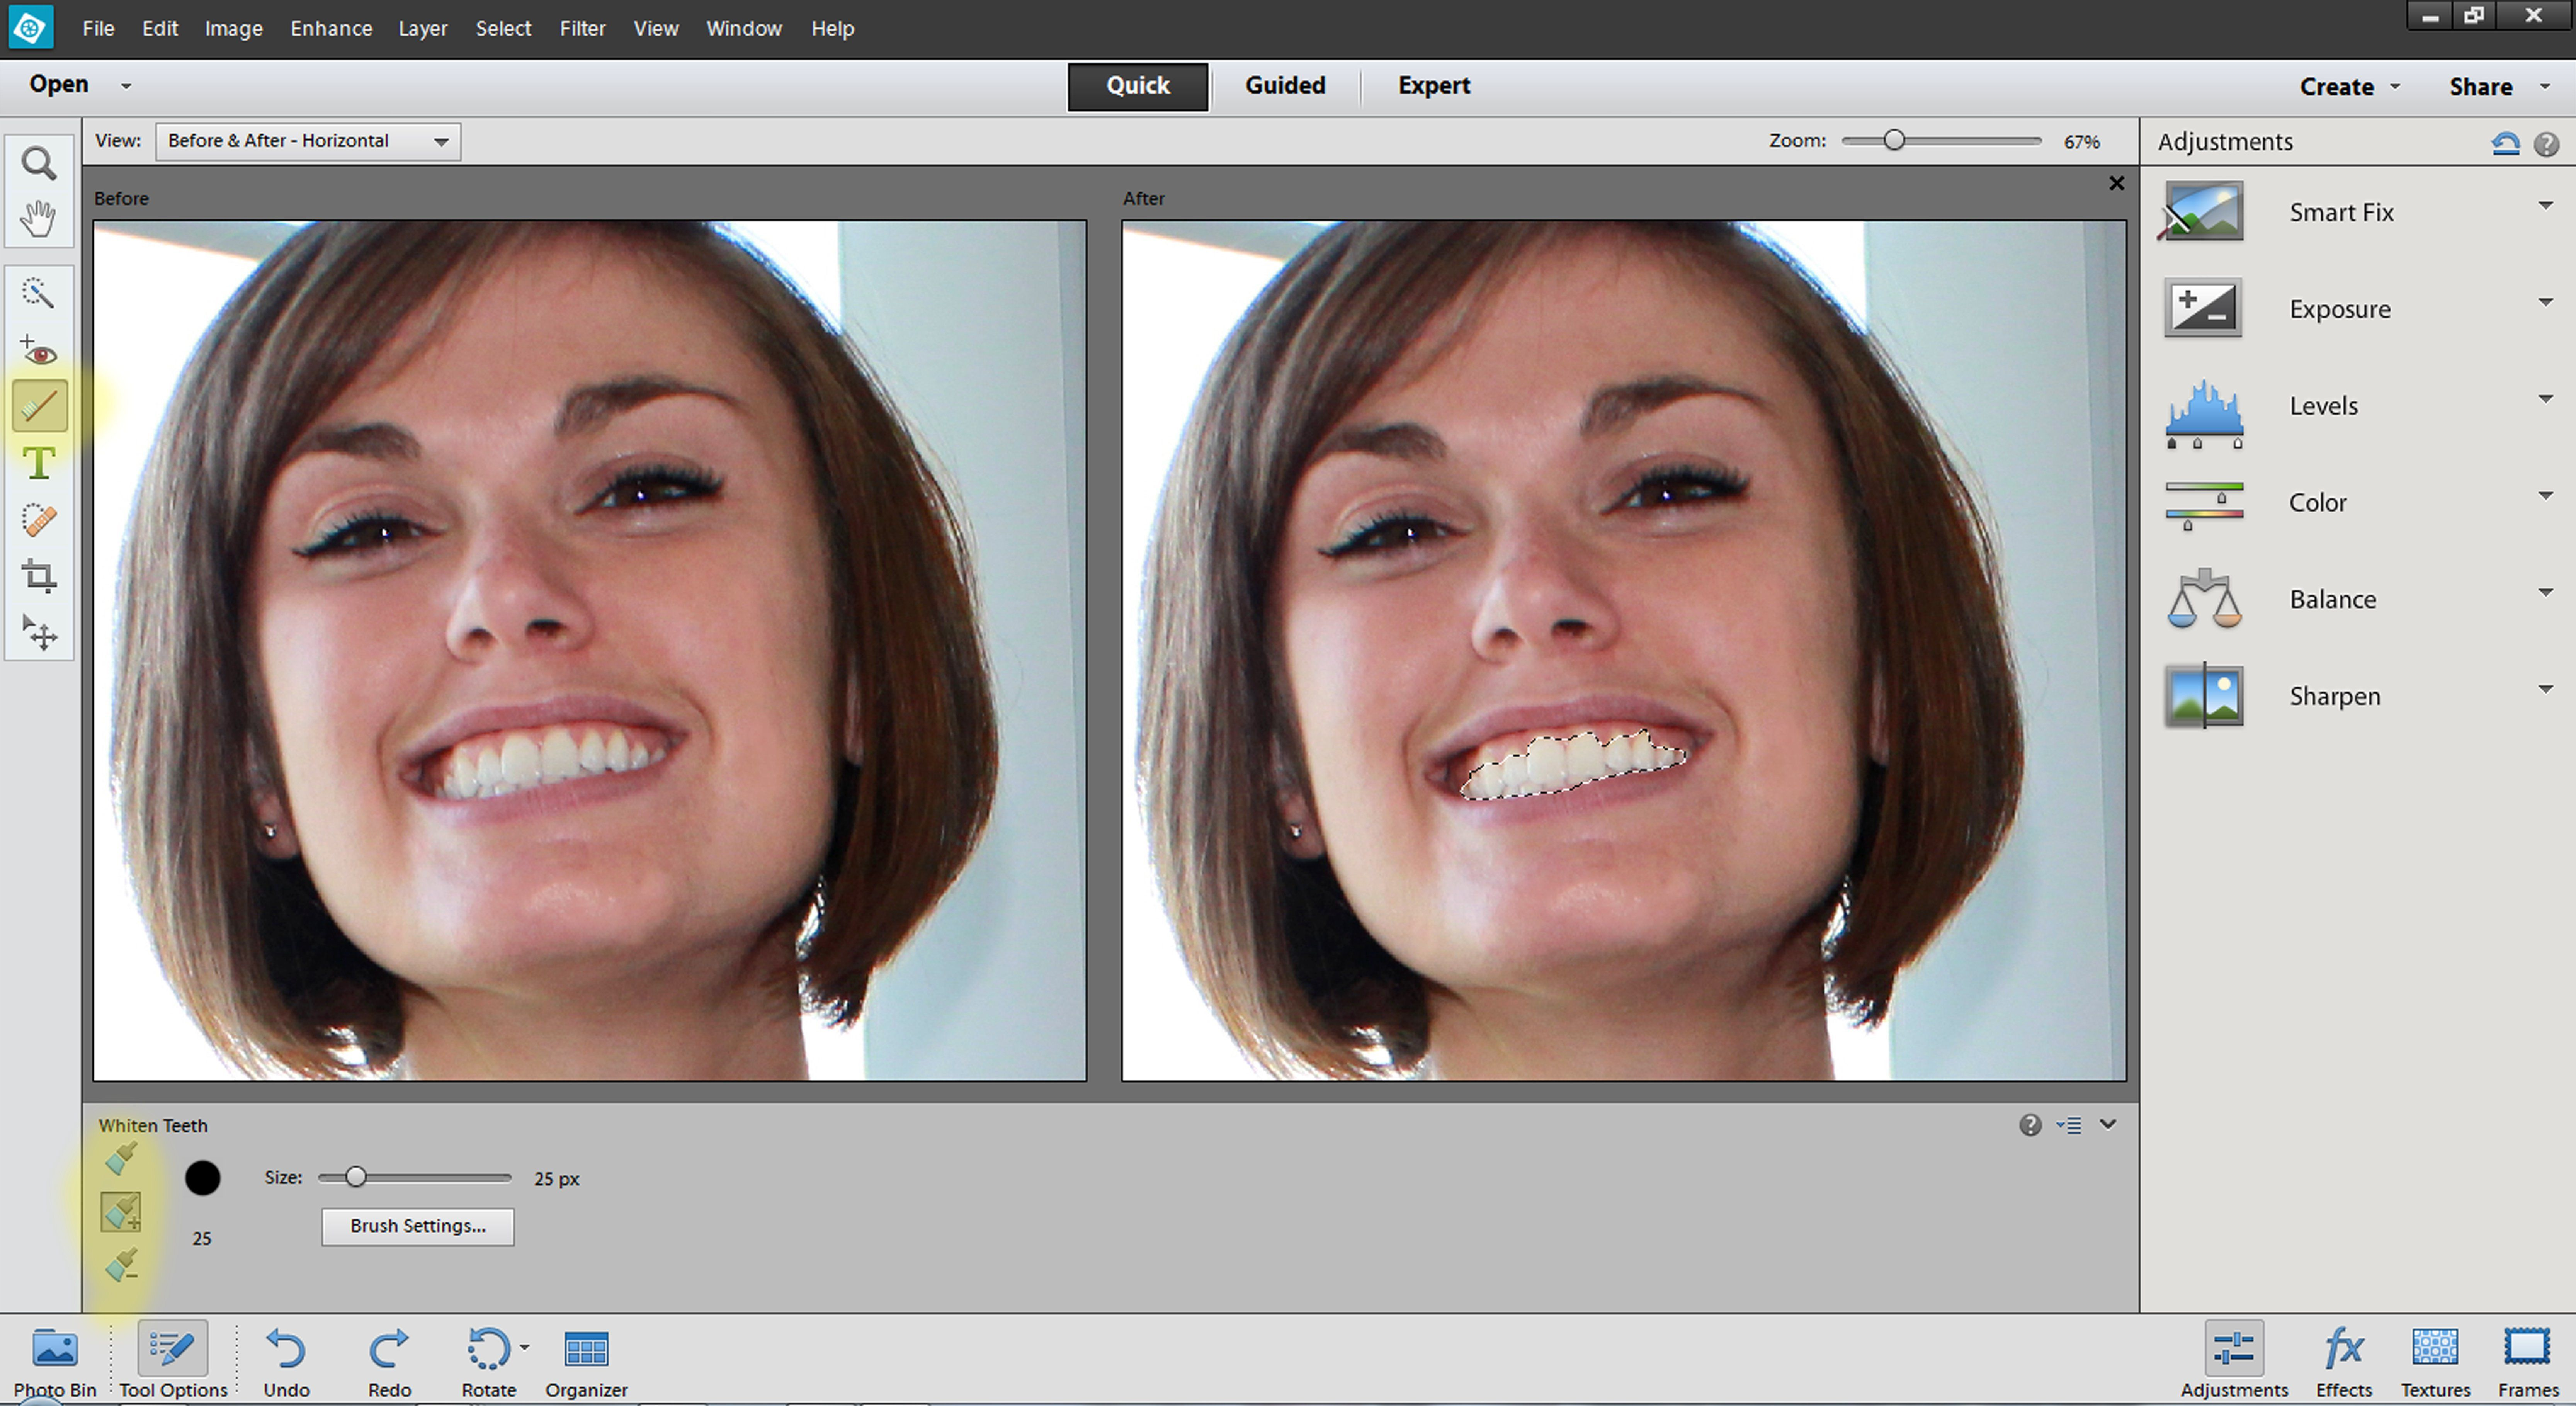 Adobe Photoshop Elements Tools And Shortcuts Of The Quick Mode